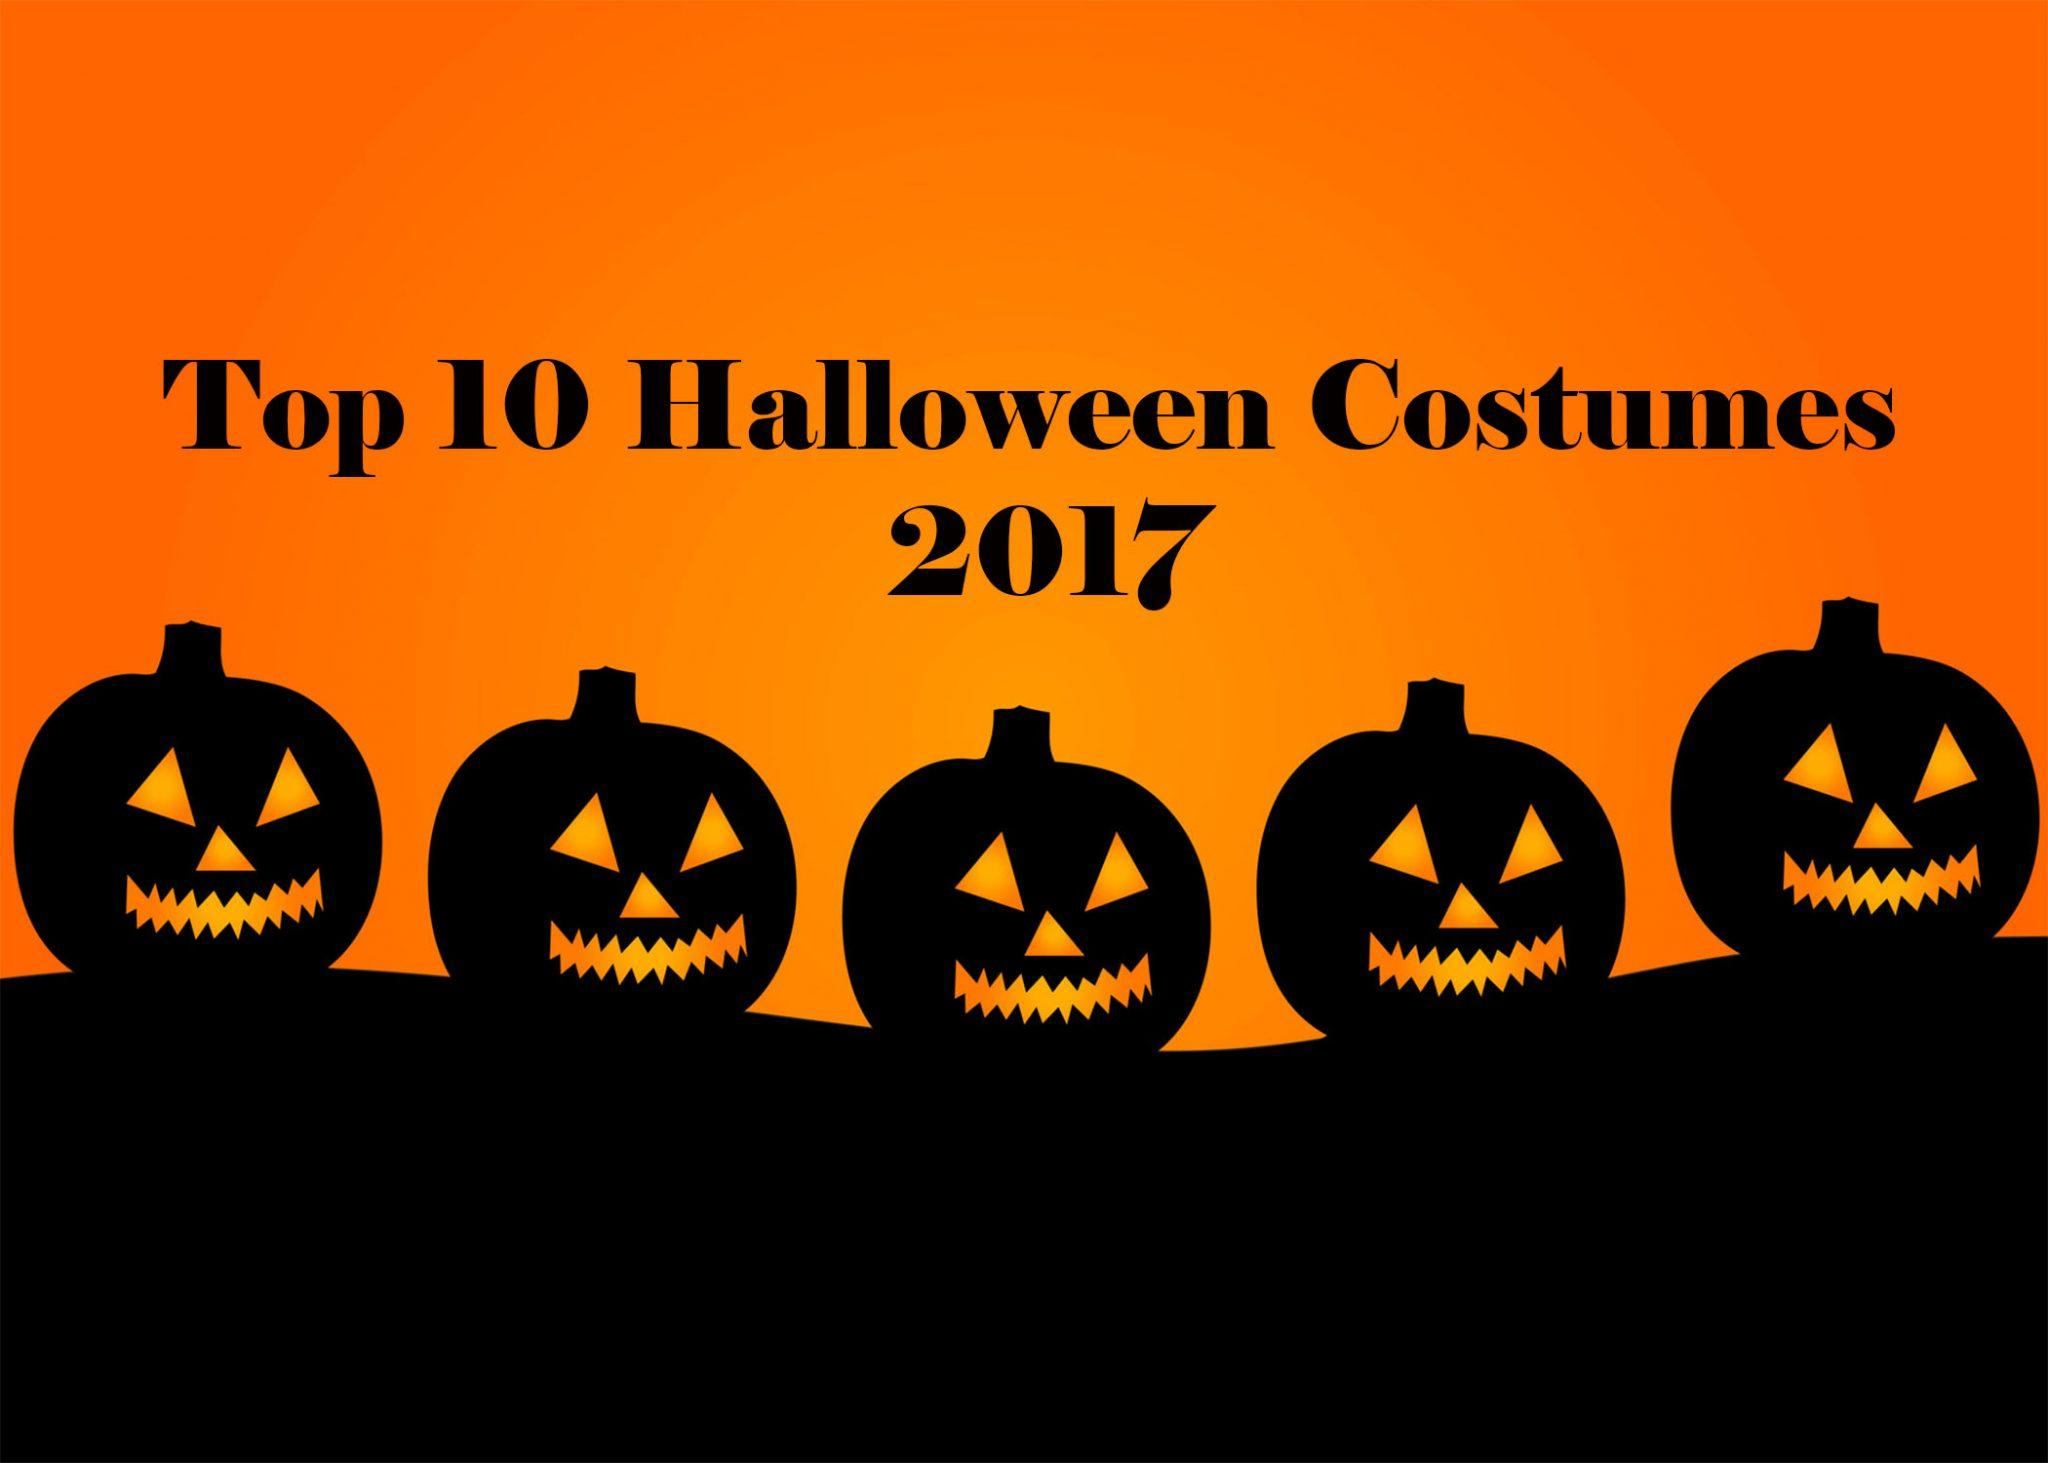 OPINION: Top 10 Most Popular Halloween Costumes of 2017